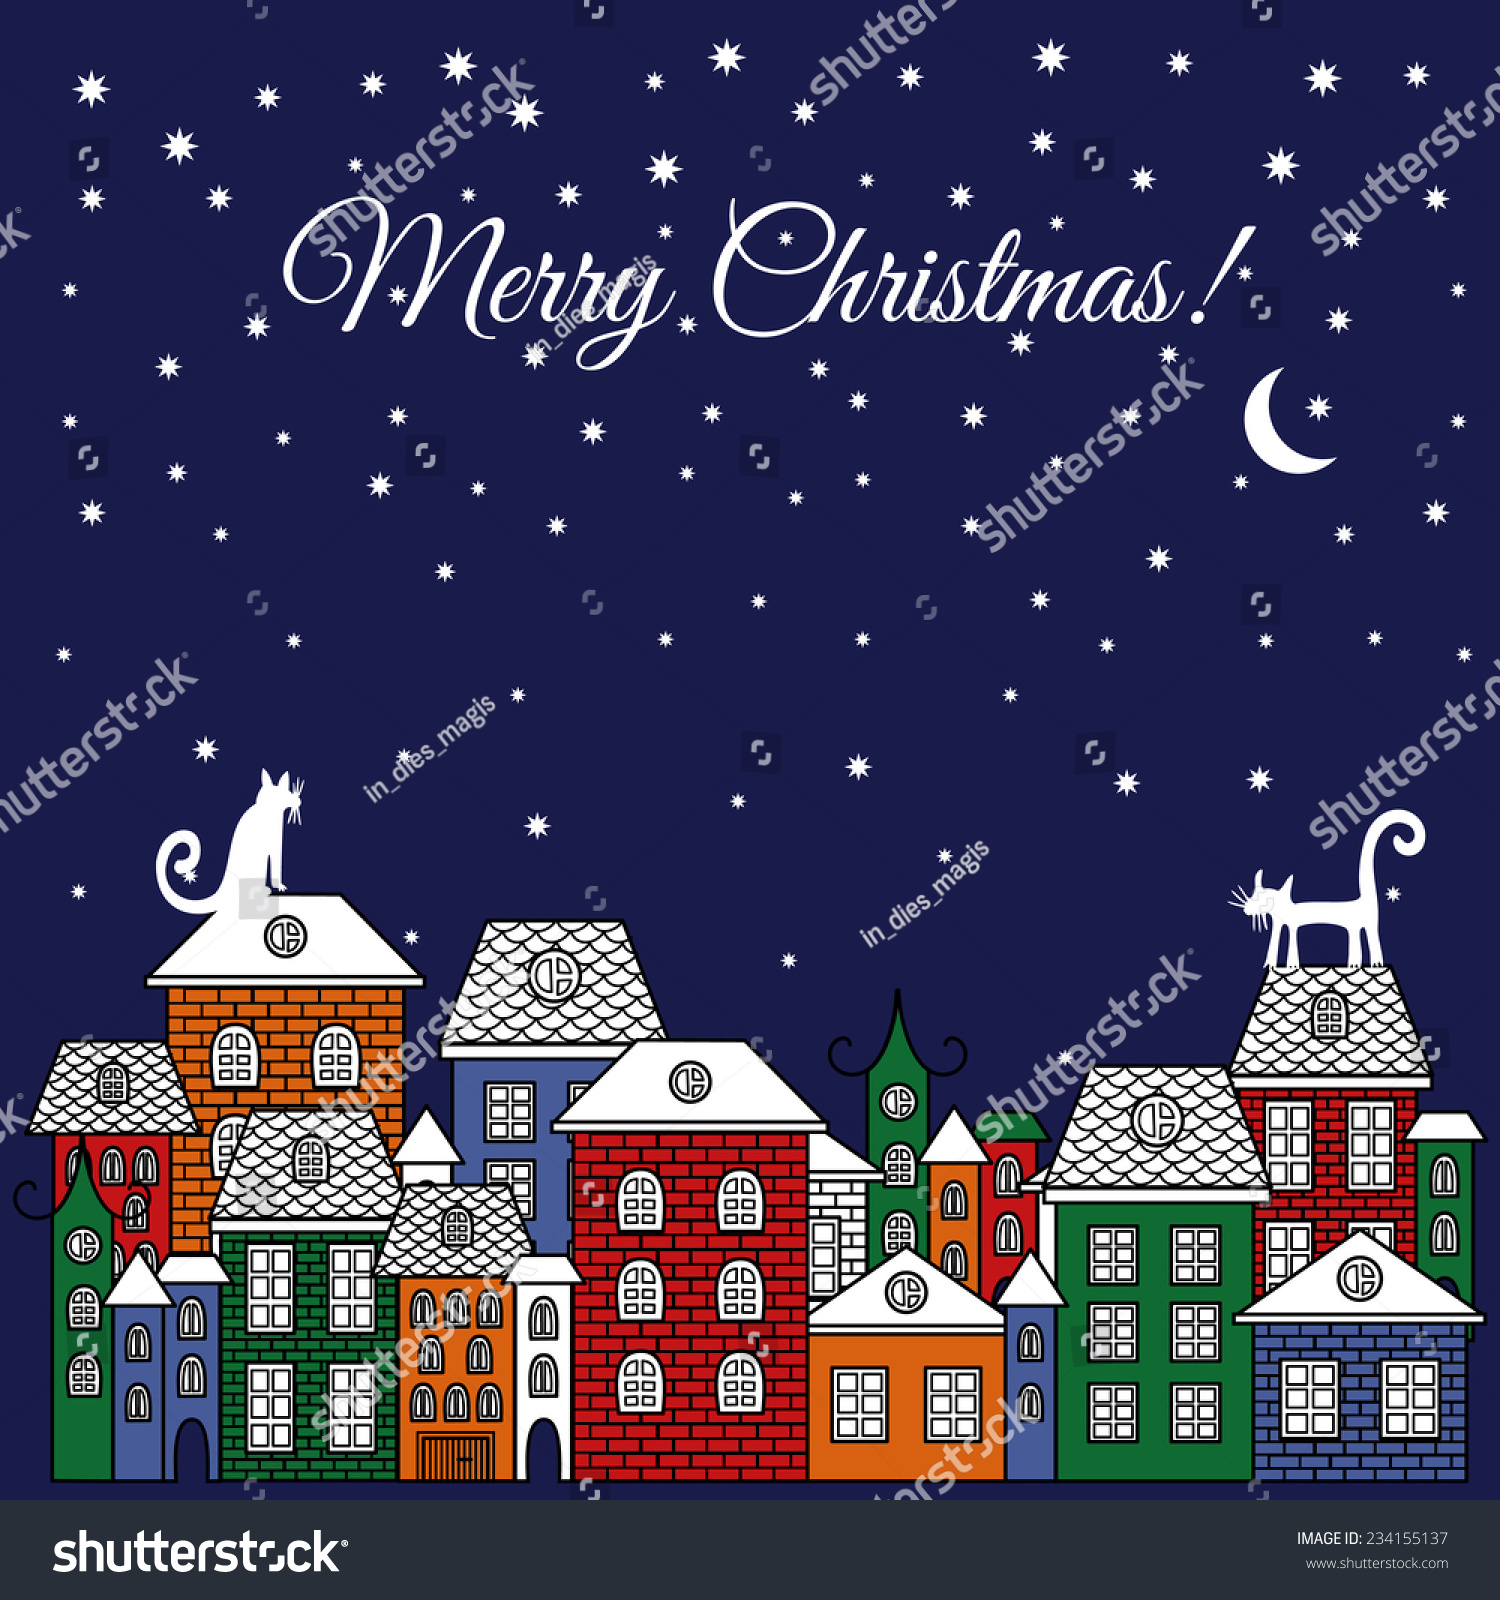 Christmas Vector Illustration Poster Cats Houses Stock Vector 2018